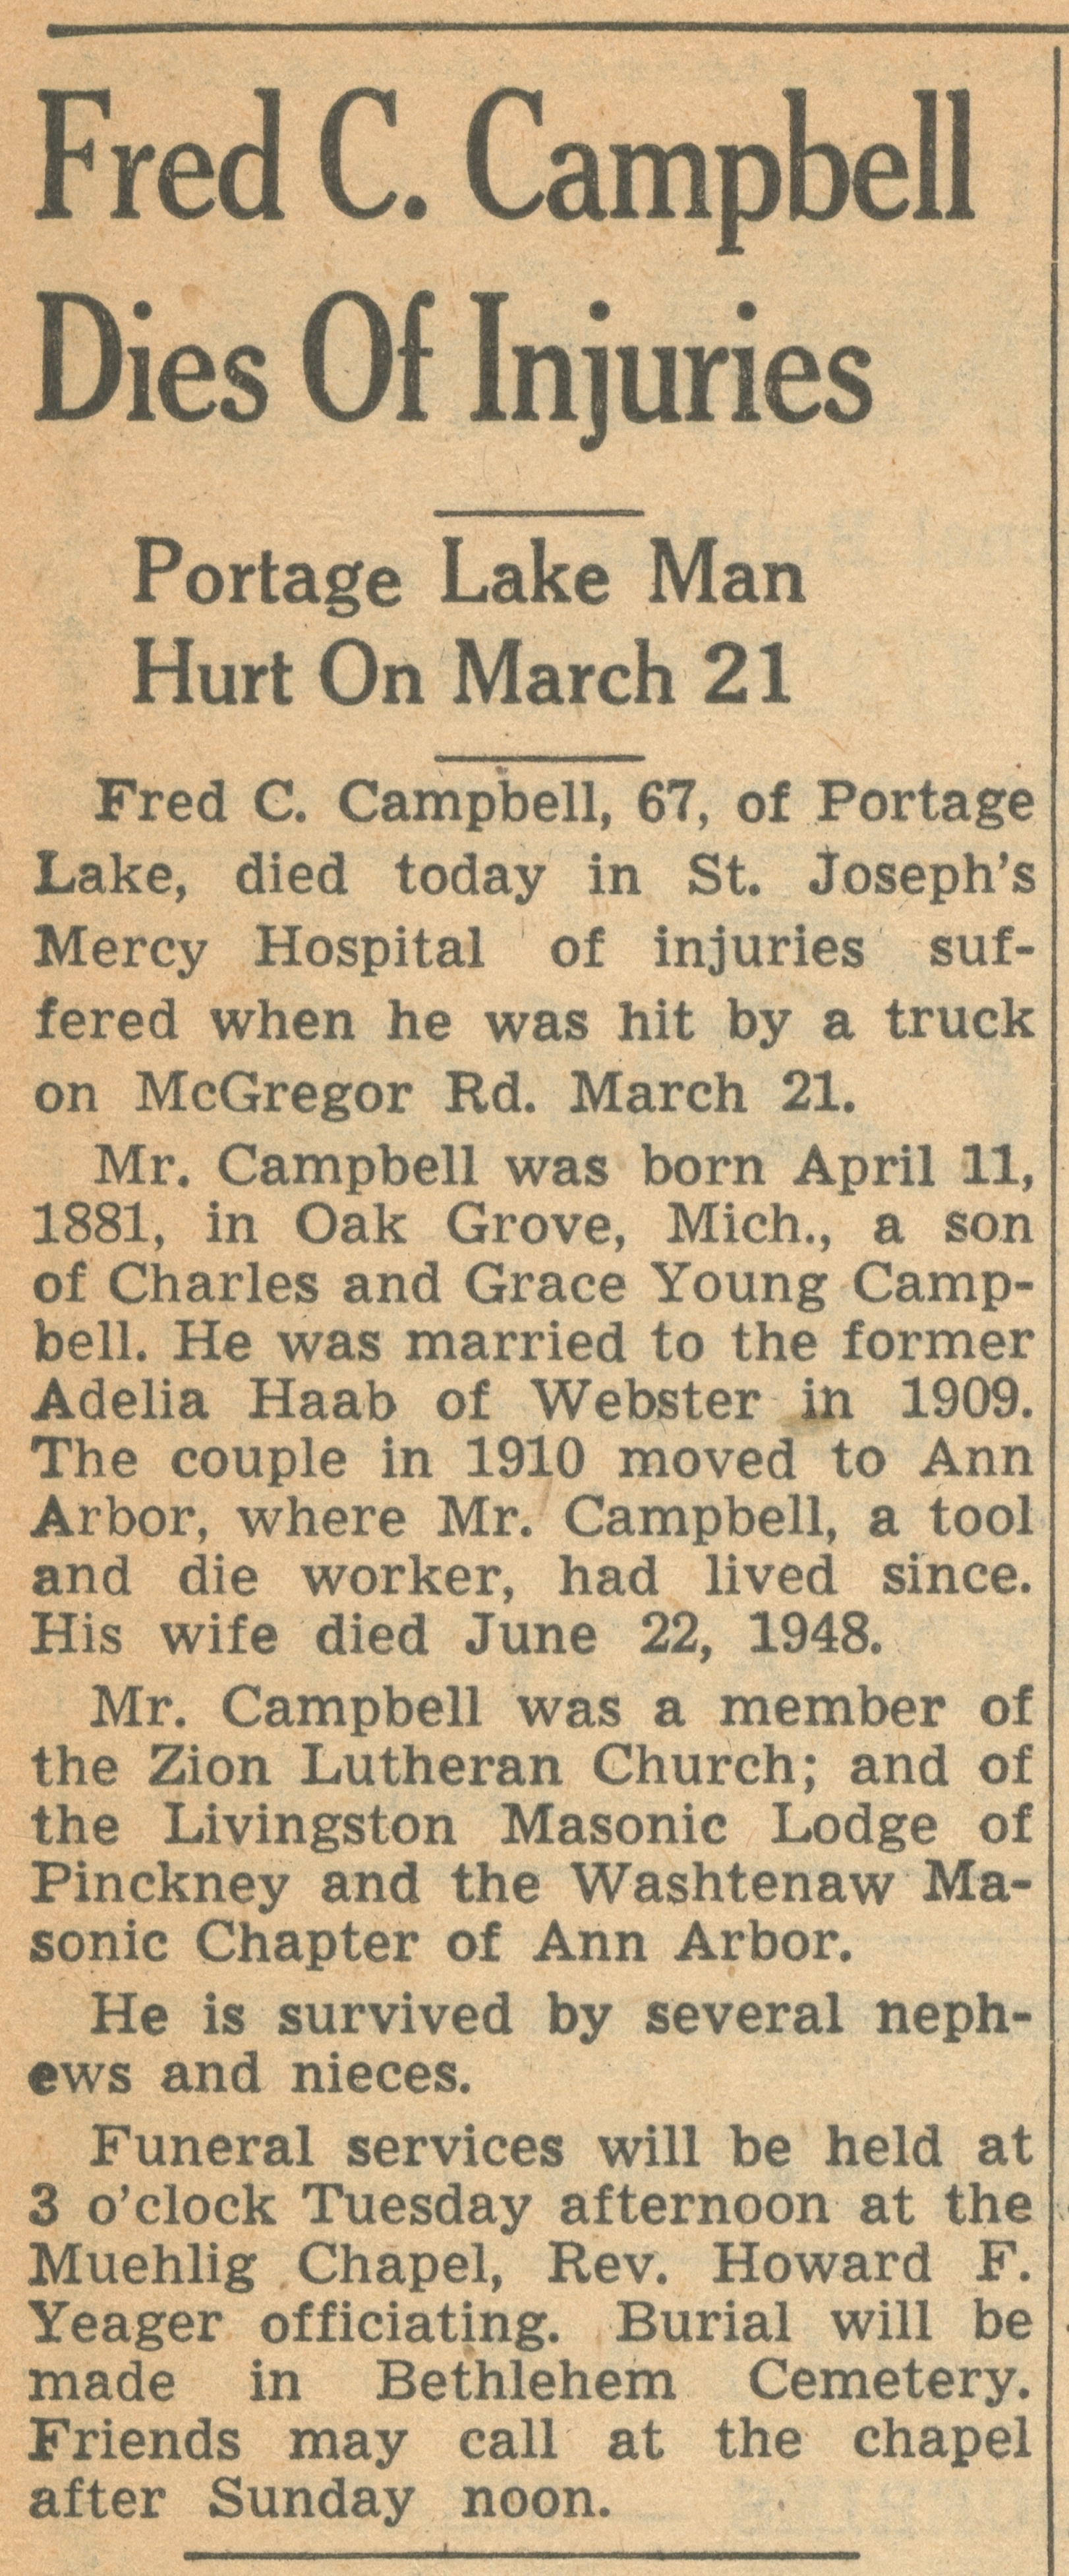 Fred C. Campbell Dies Of Injuries image